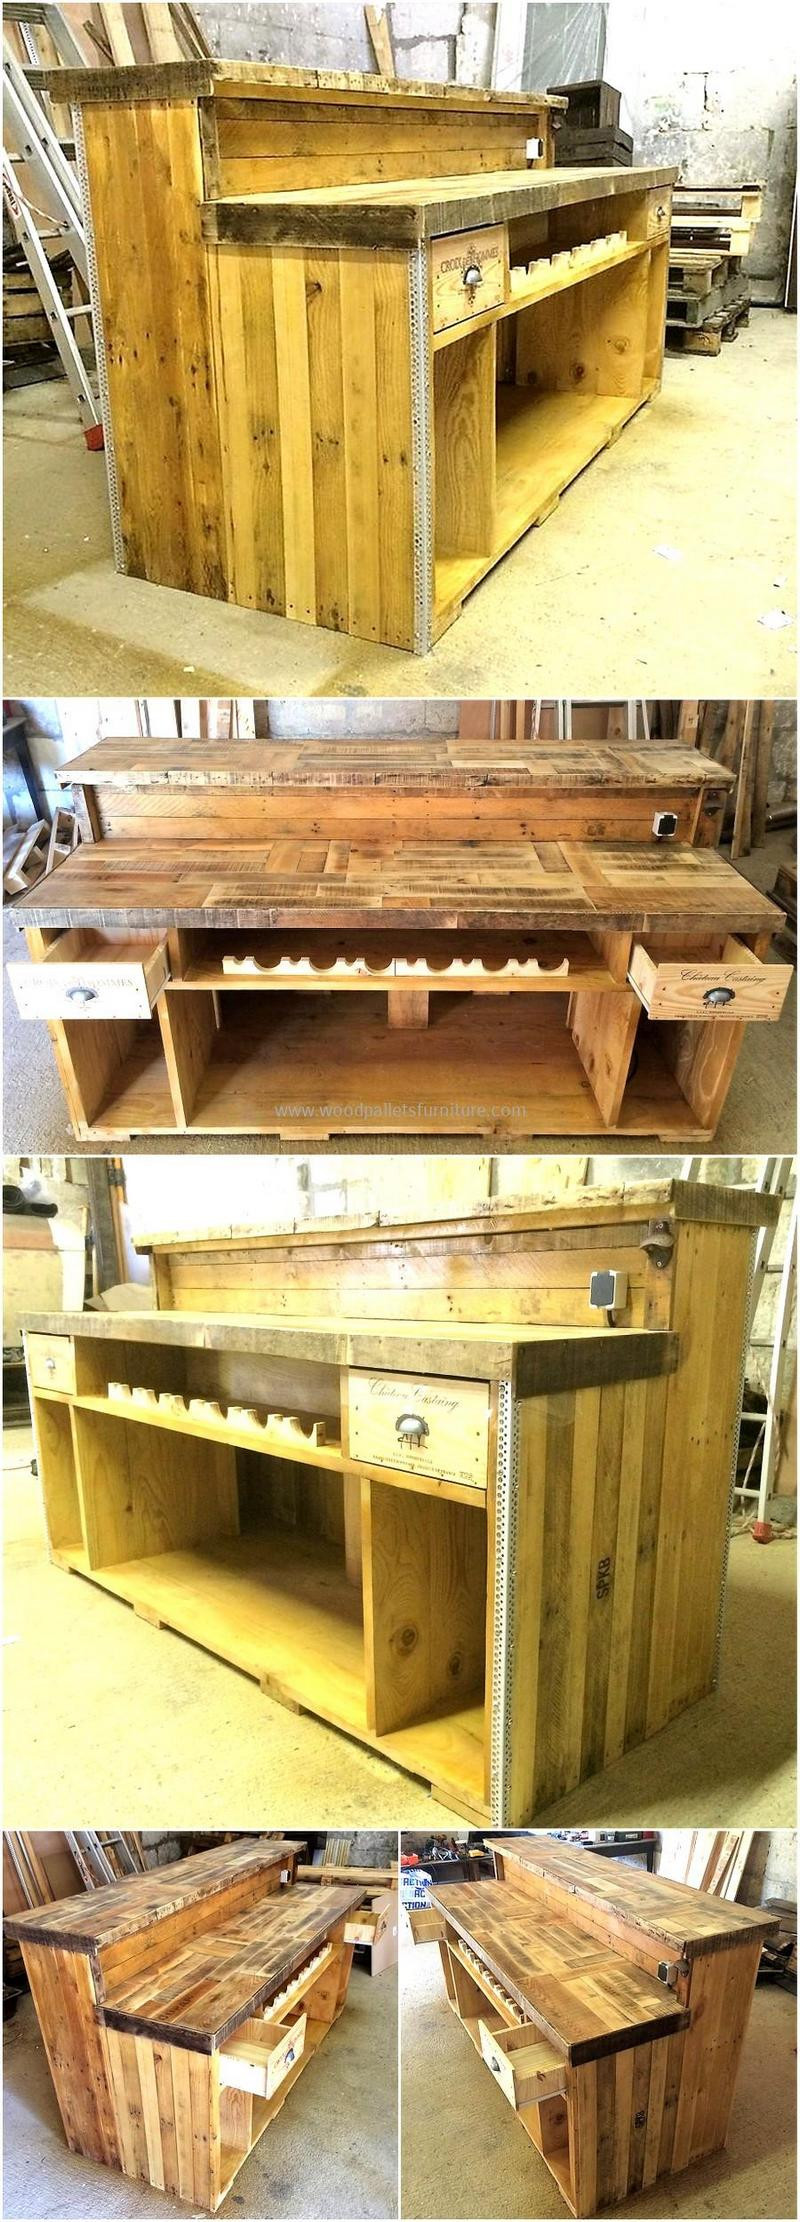 DIY Pallet Bar Plans  200 DIY Ideas for Wood Pallet Bars